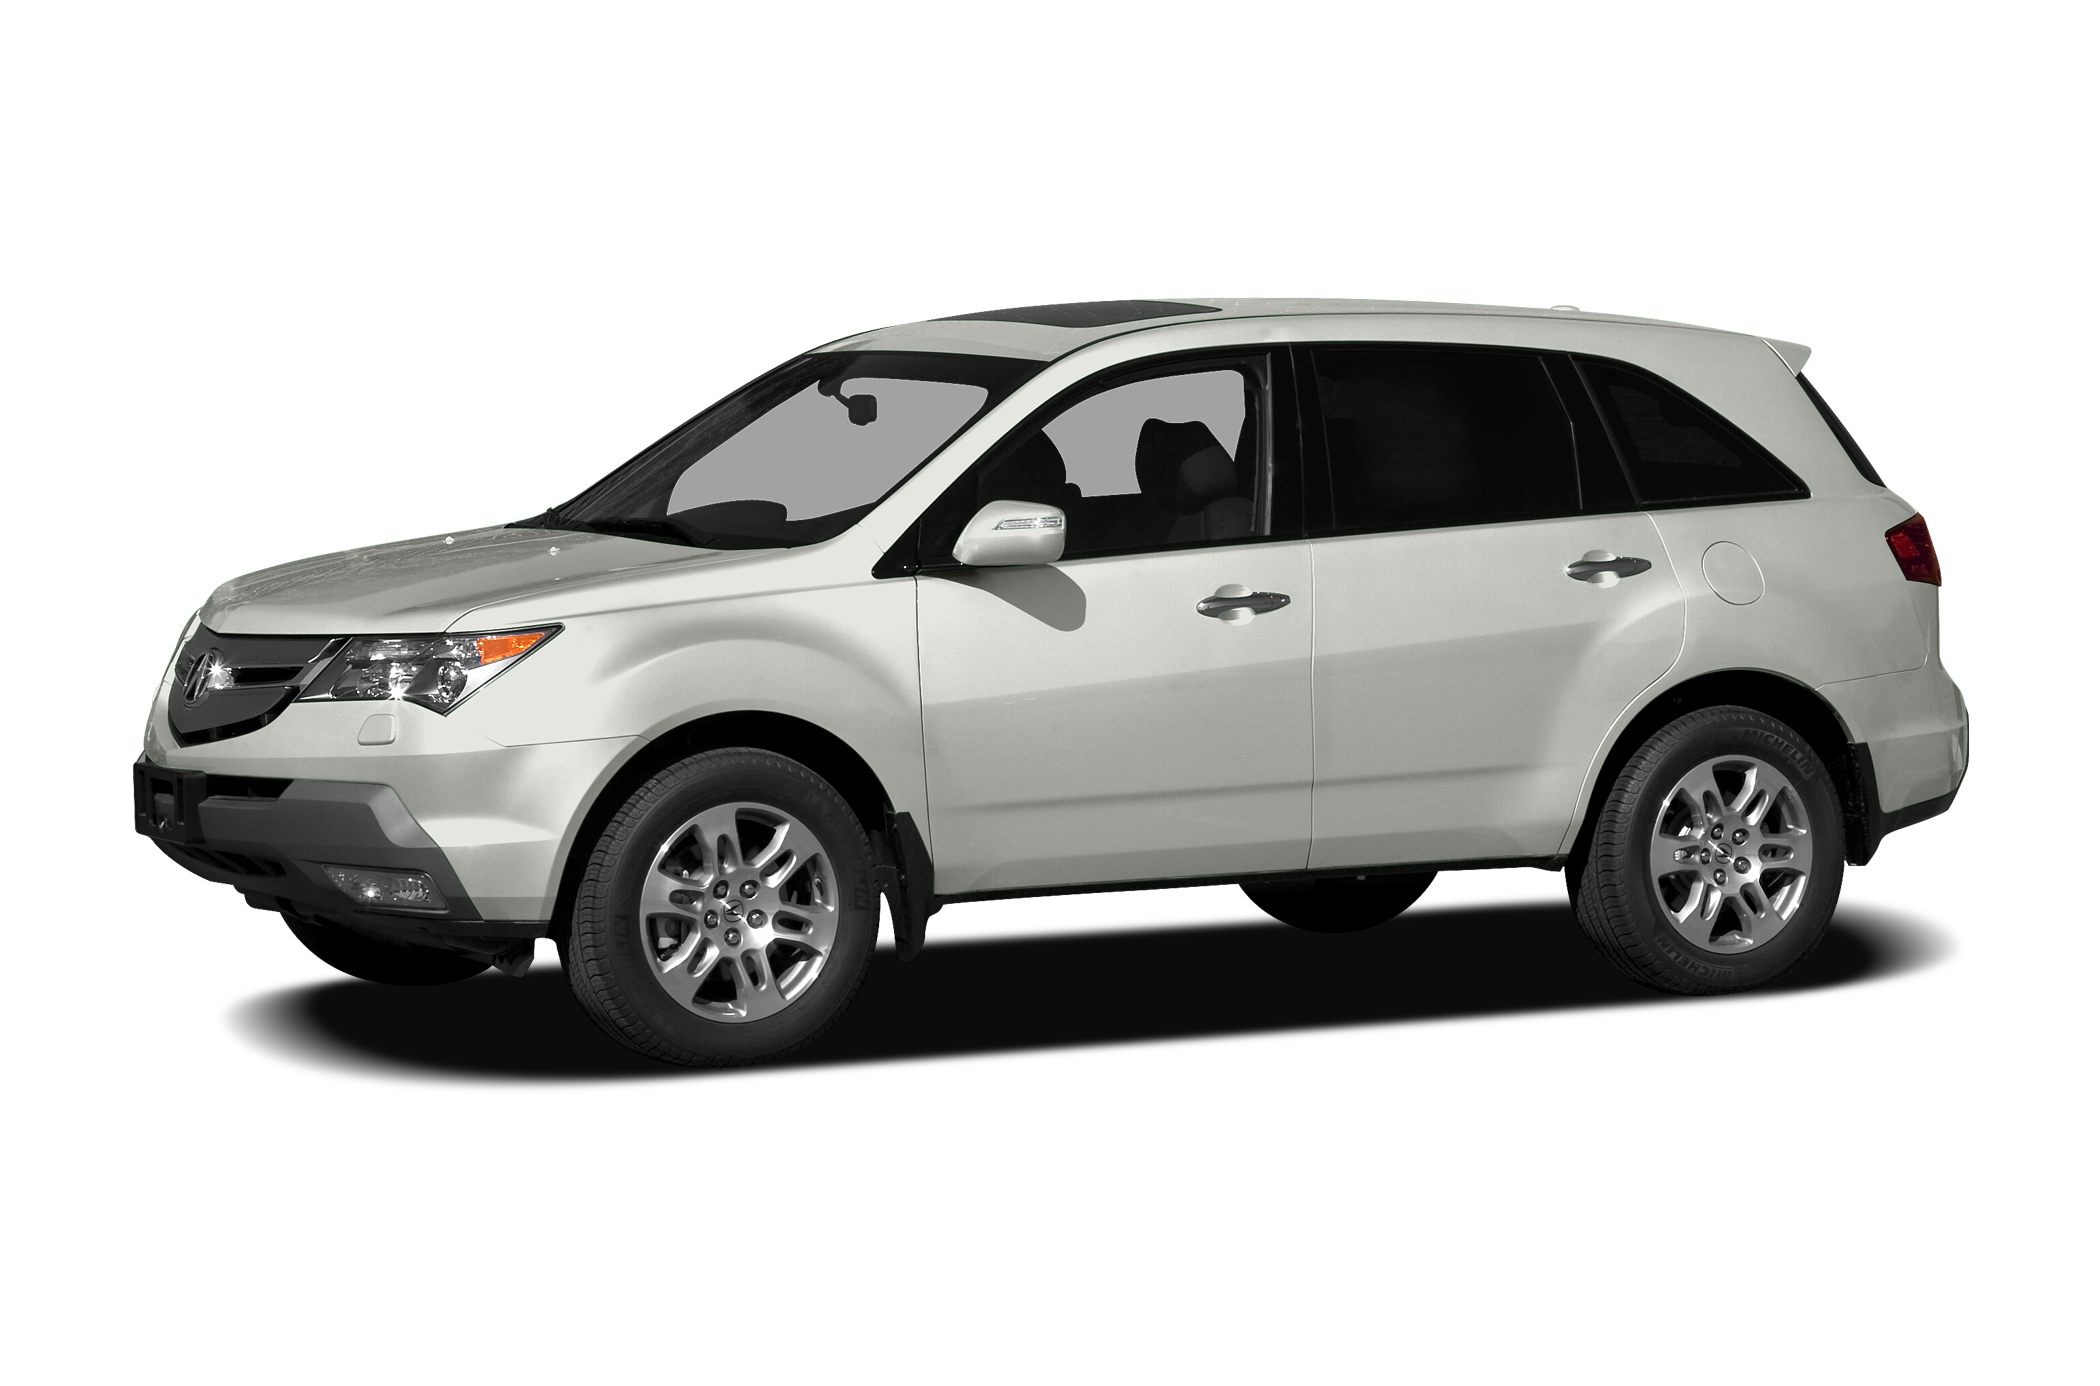 2009 Acura MDX SUV for sale in Glen Burnie for $21,885 with 110,972 miles